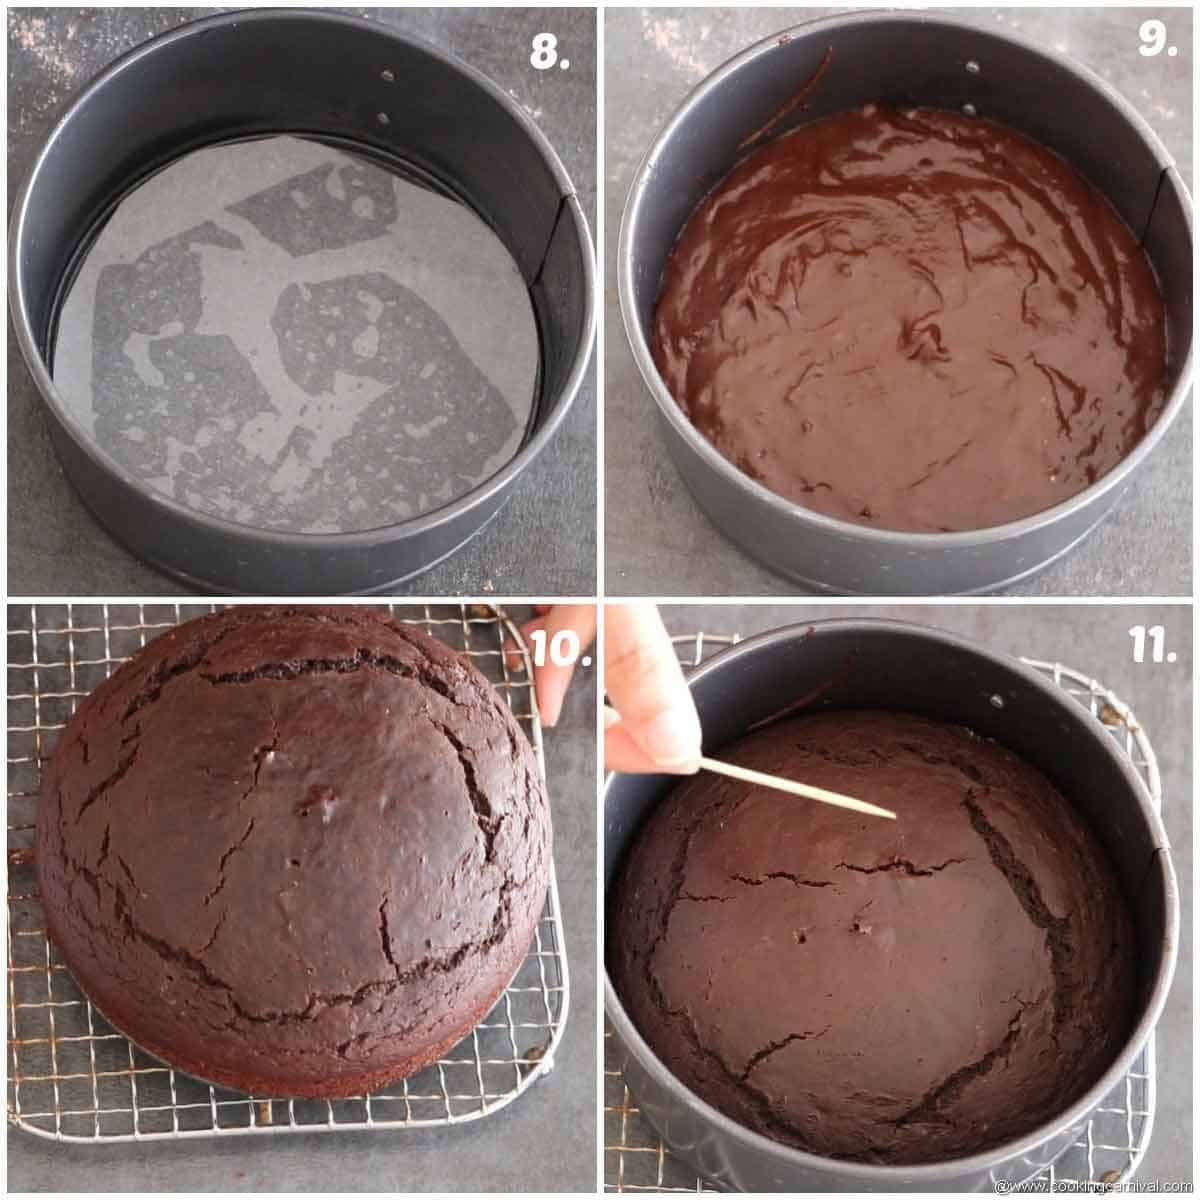 Baking chocolate cake in oven